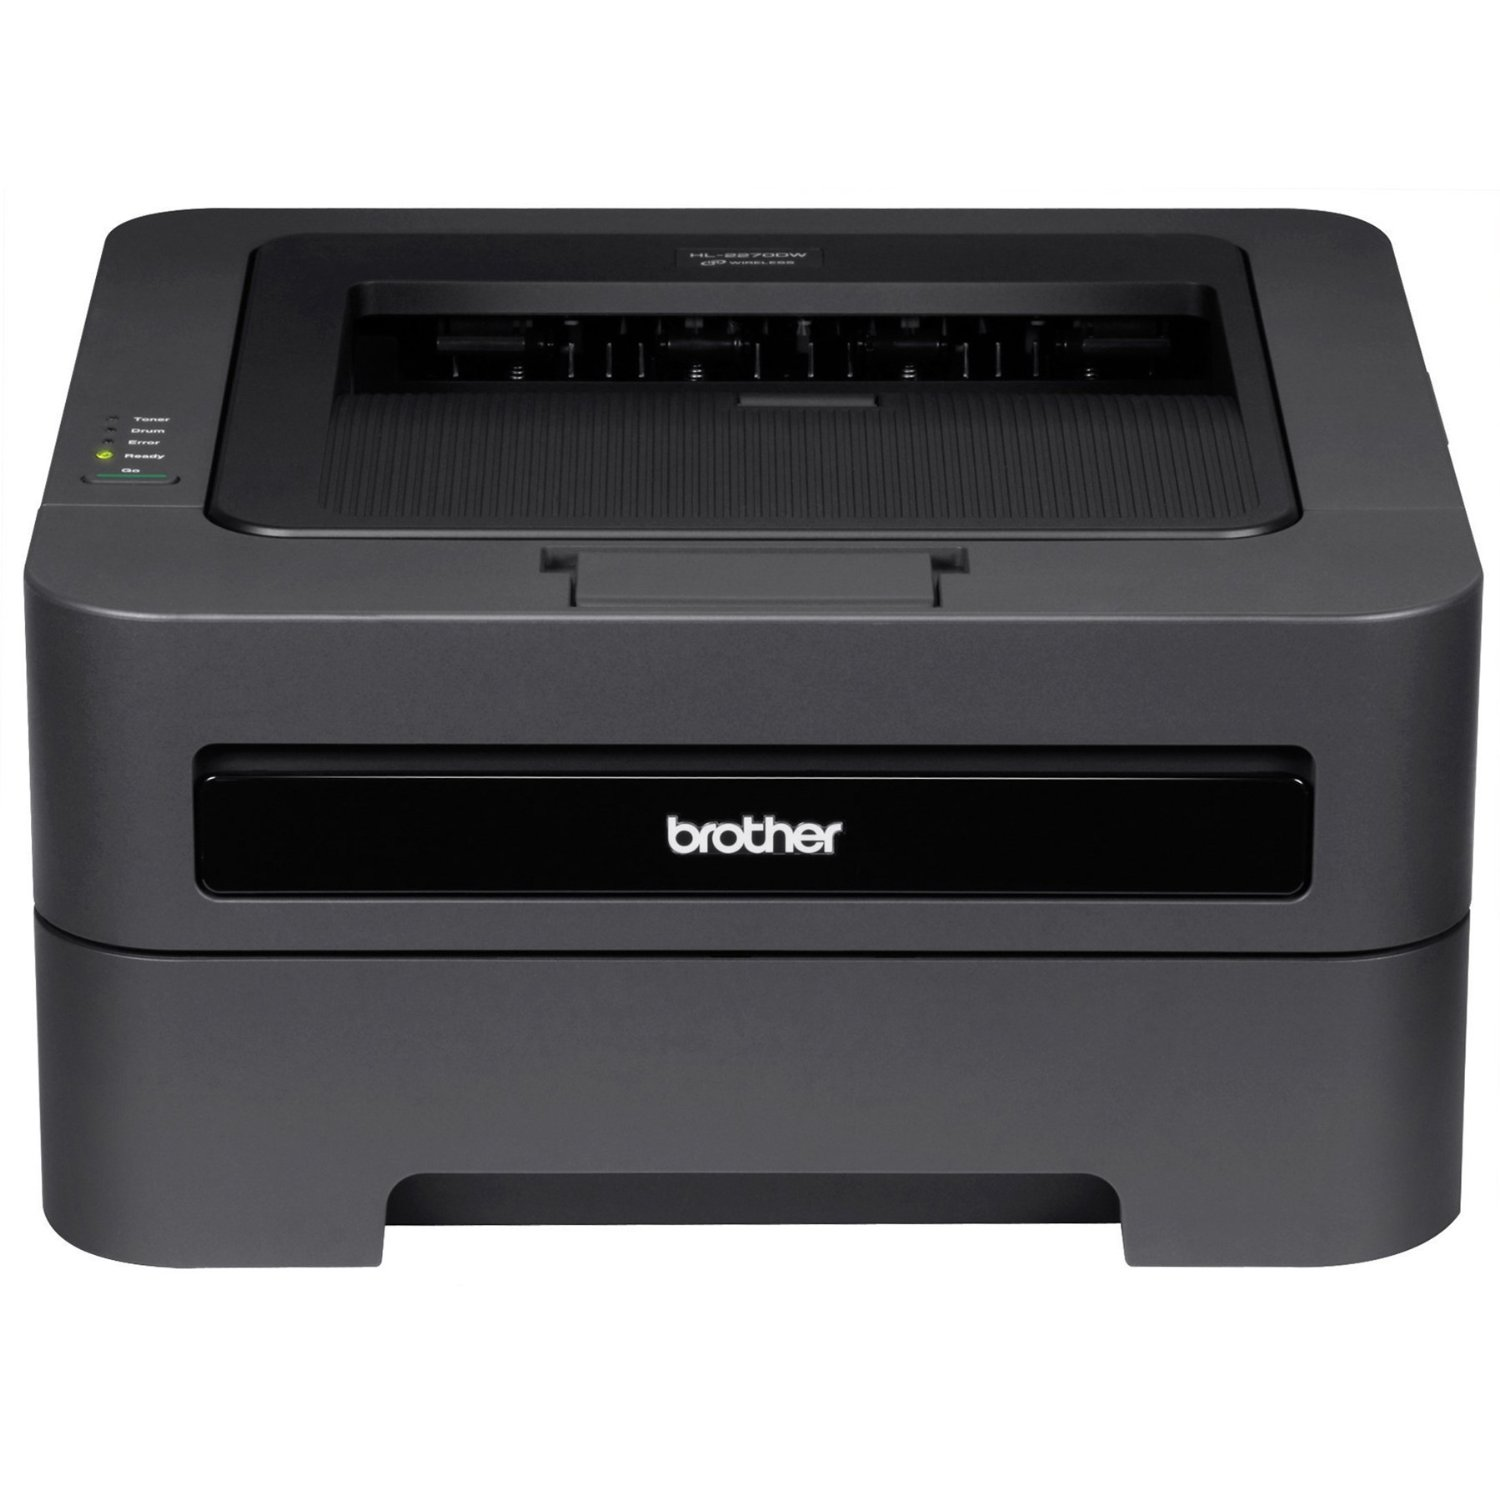 Brother HL-2270DW Compact Laser Printer Review